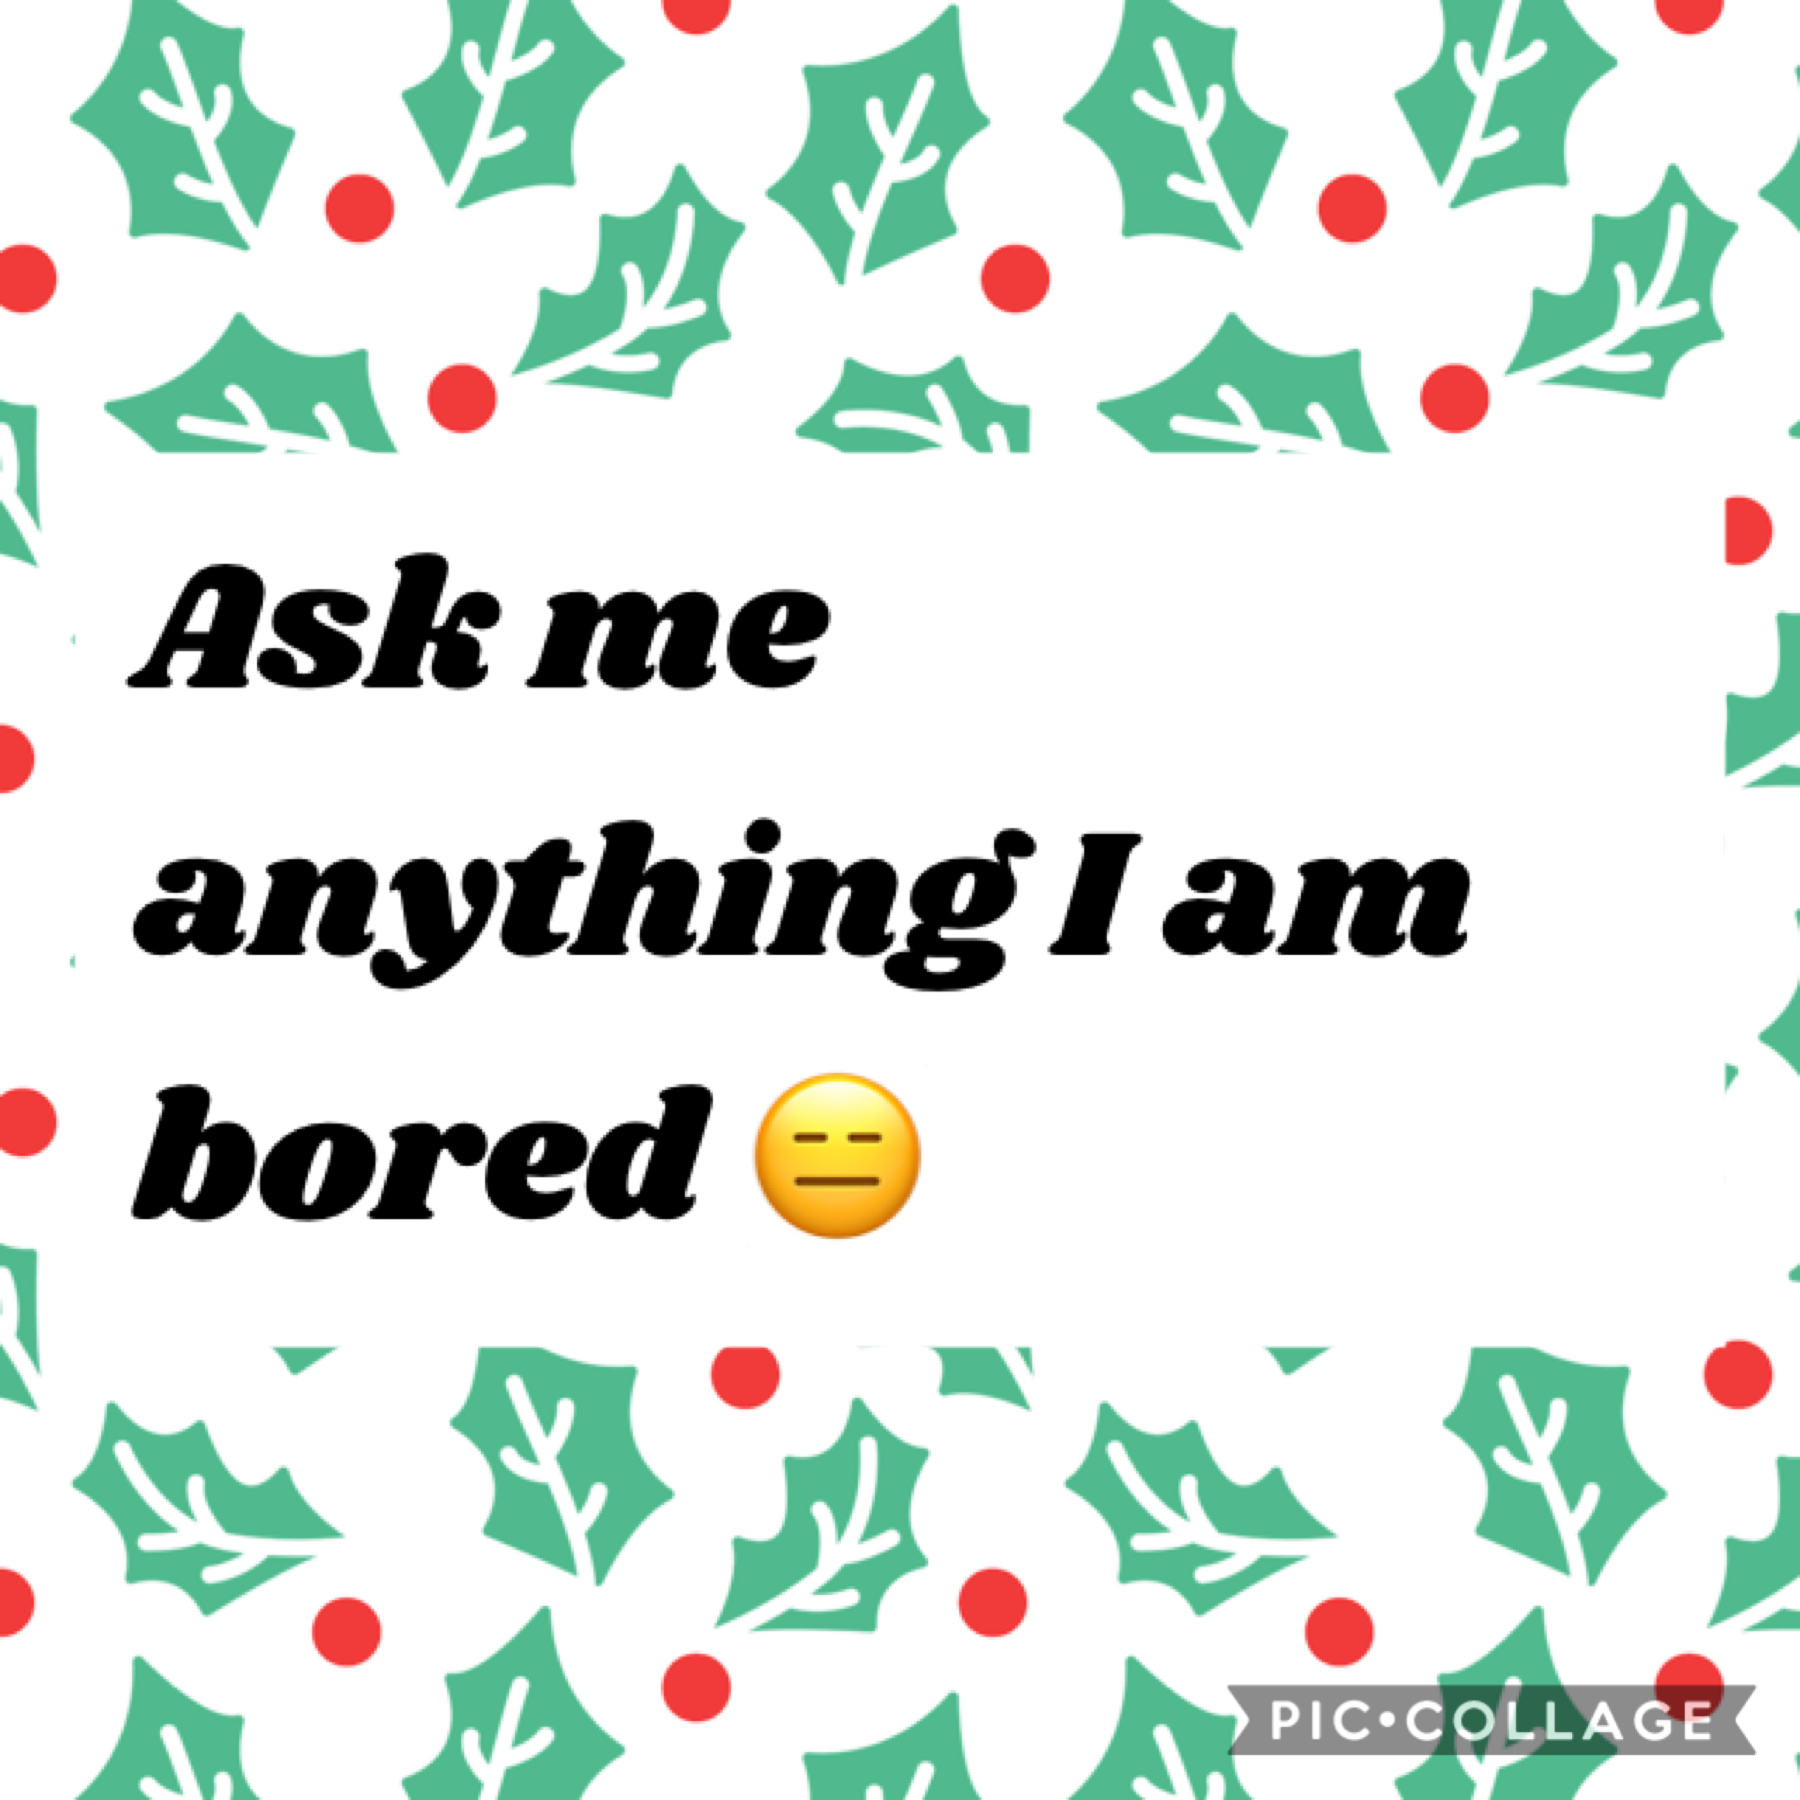 I am so bored